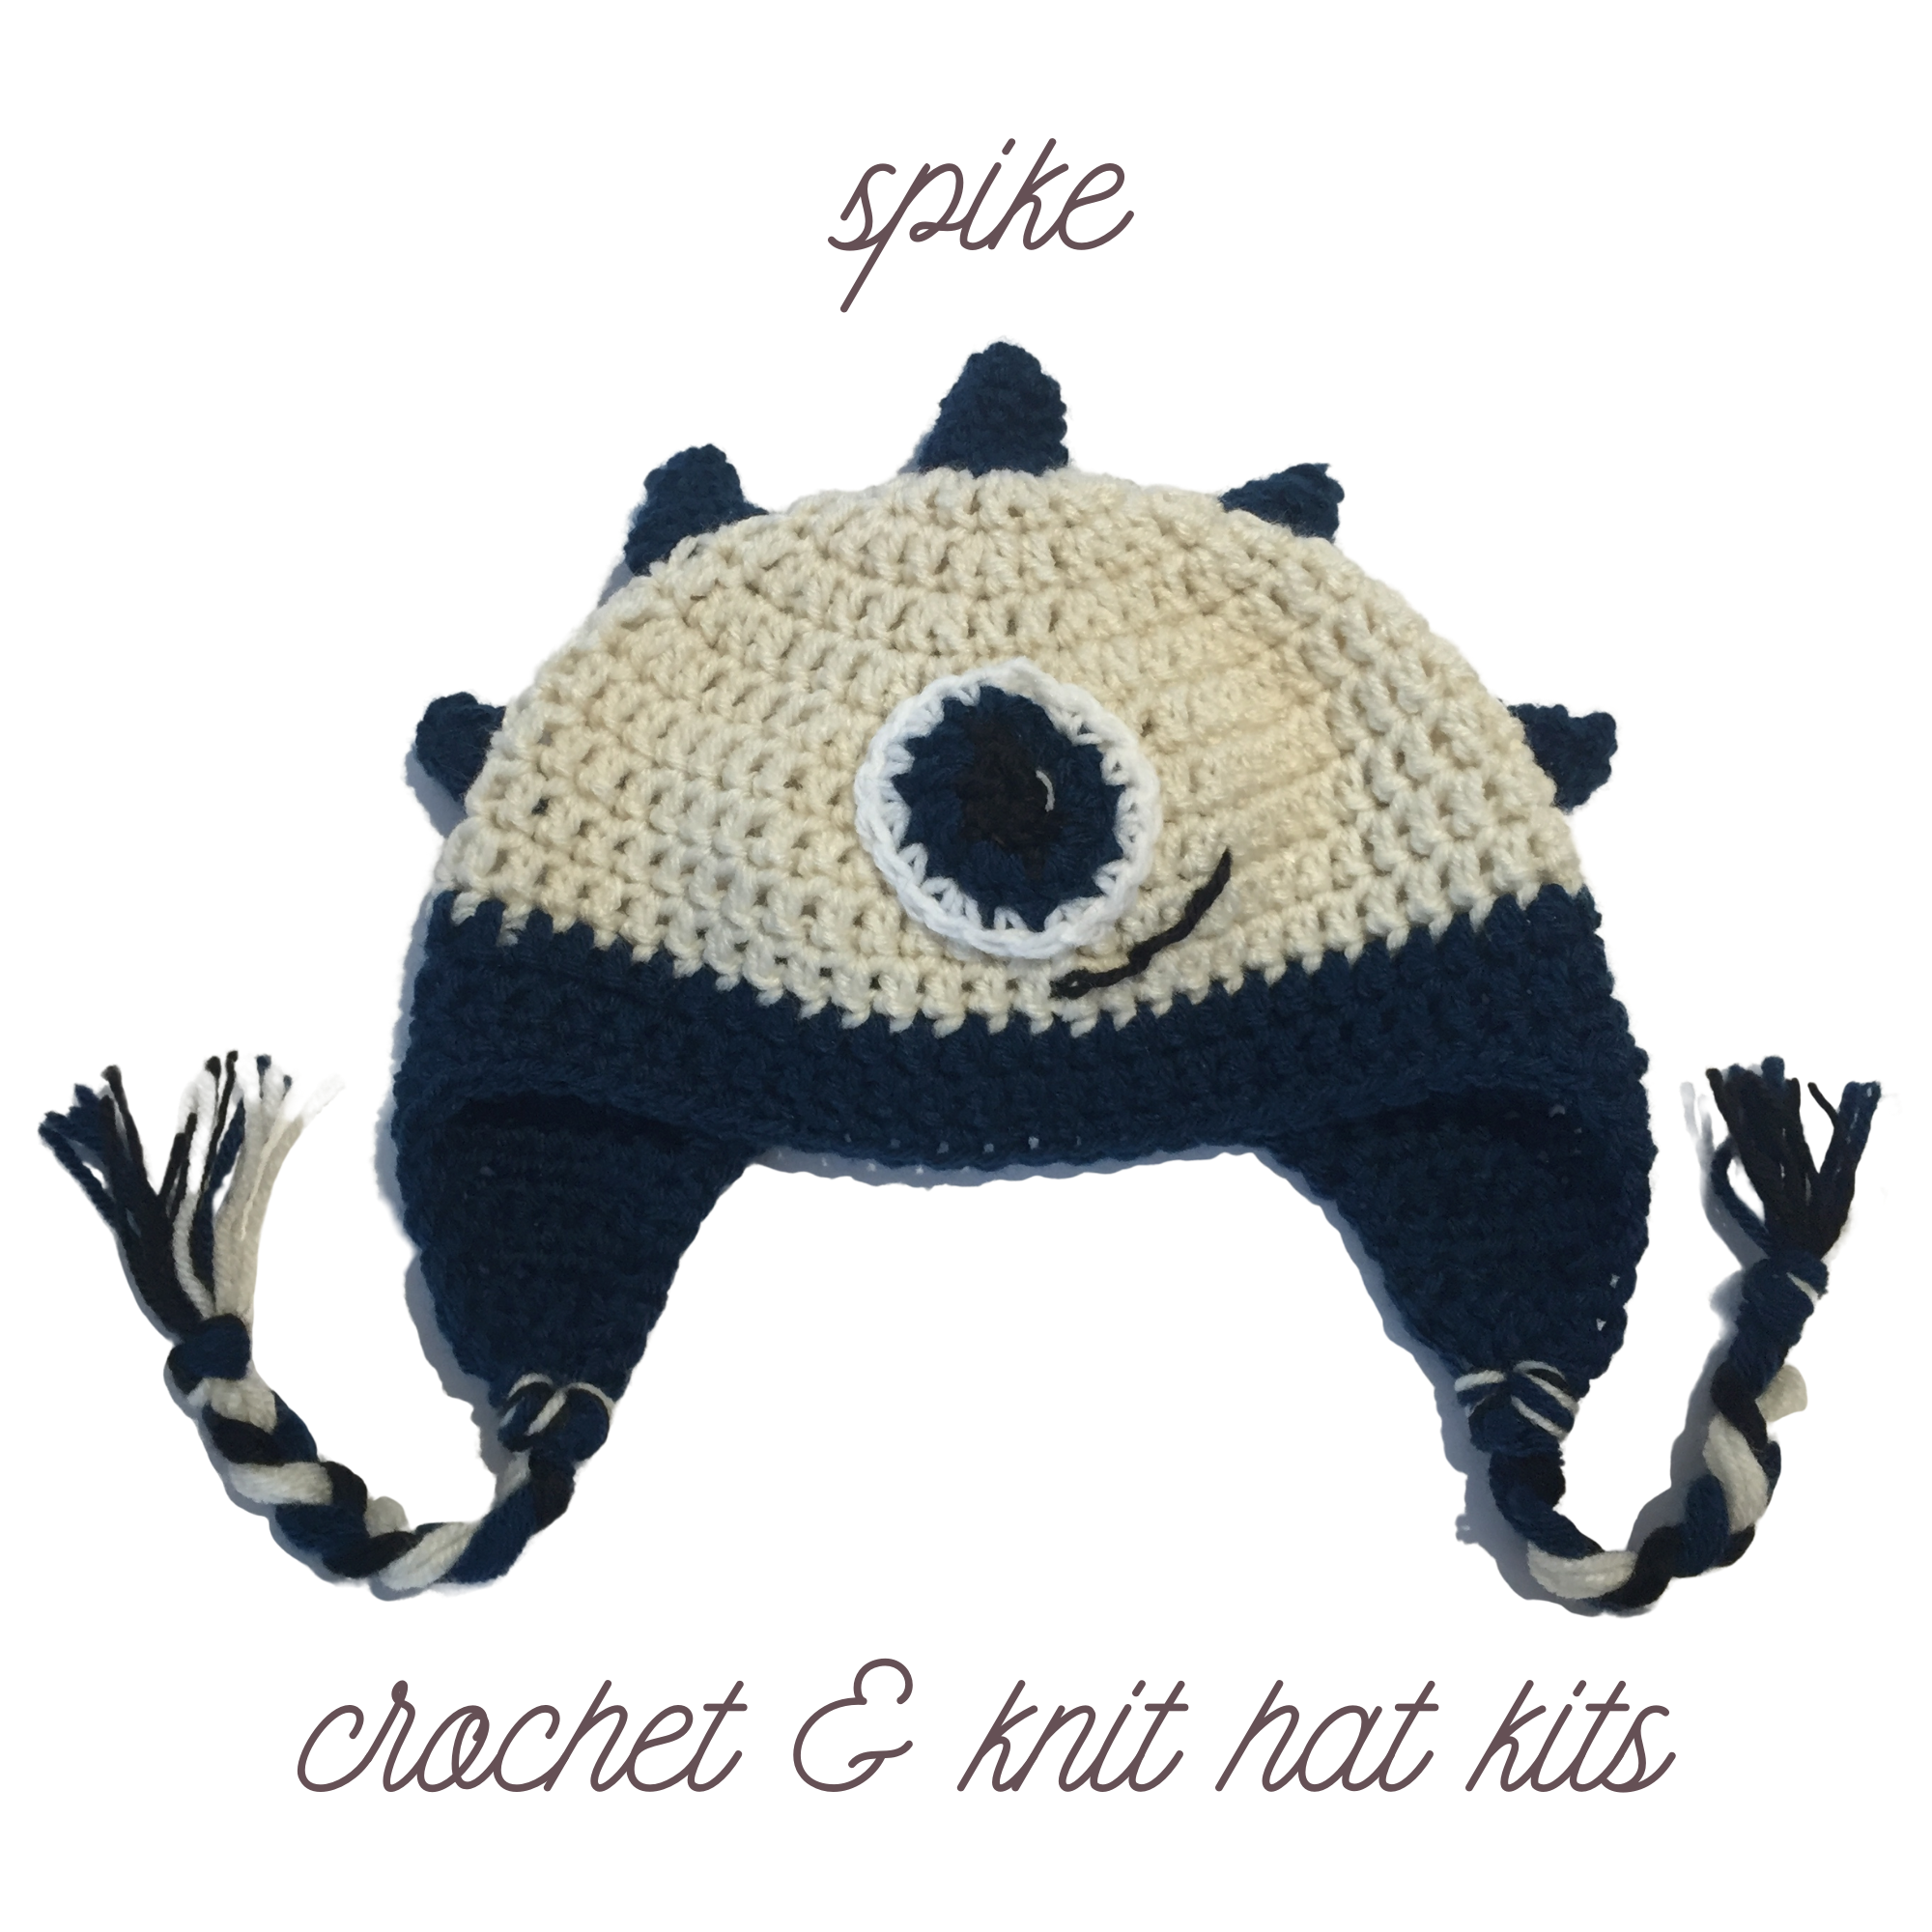 spike crochet and knit hat kit image – 2000×2000